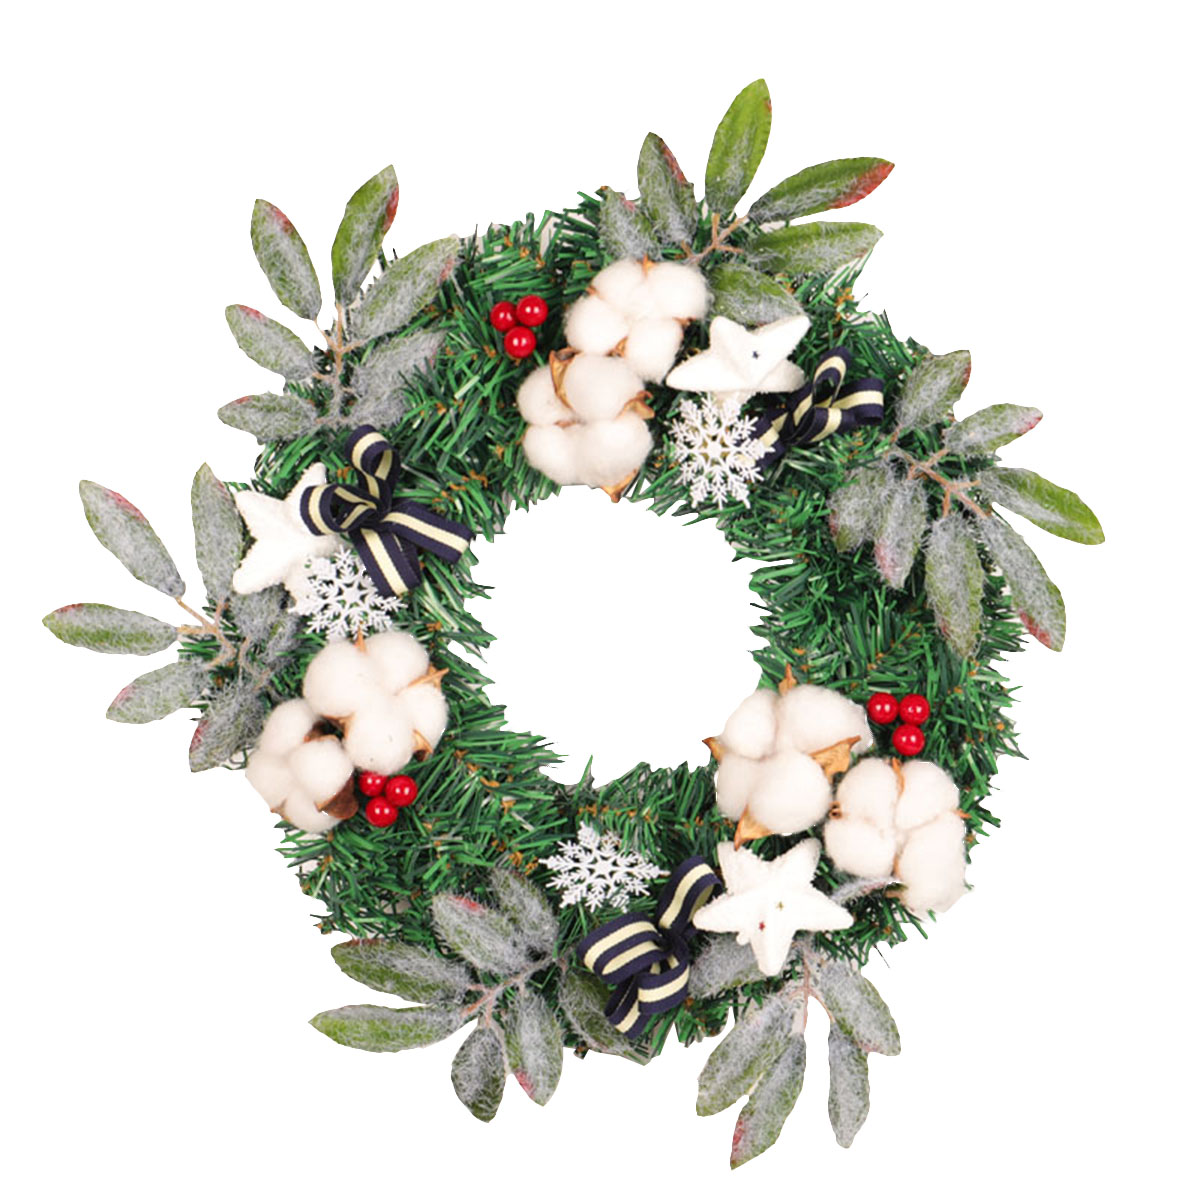 Artificial Handmade Exquisite Ornament Garland Holiday Christmas Pine Cones for Front Door Wall Mantelpiece Window Office